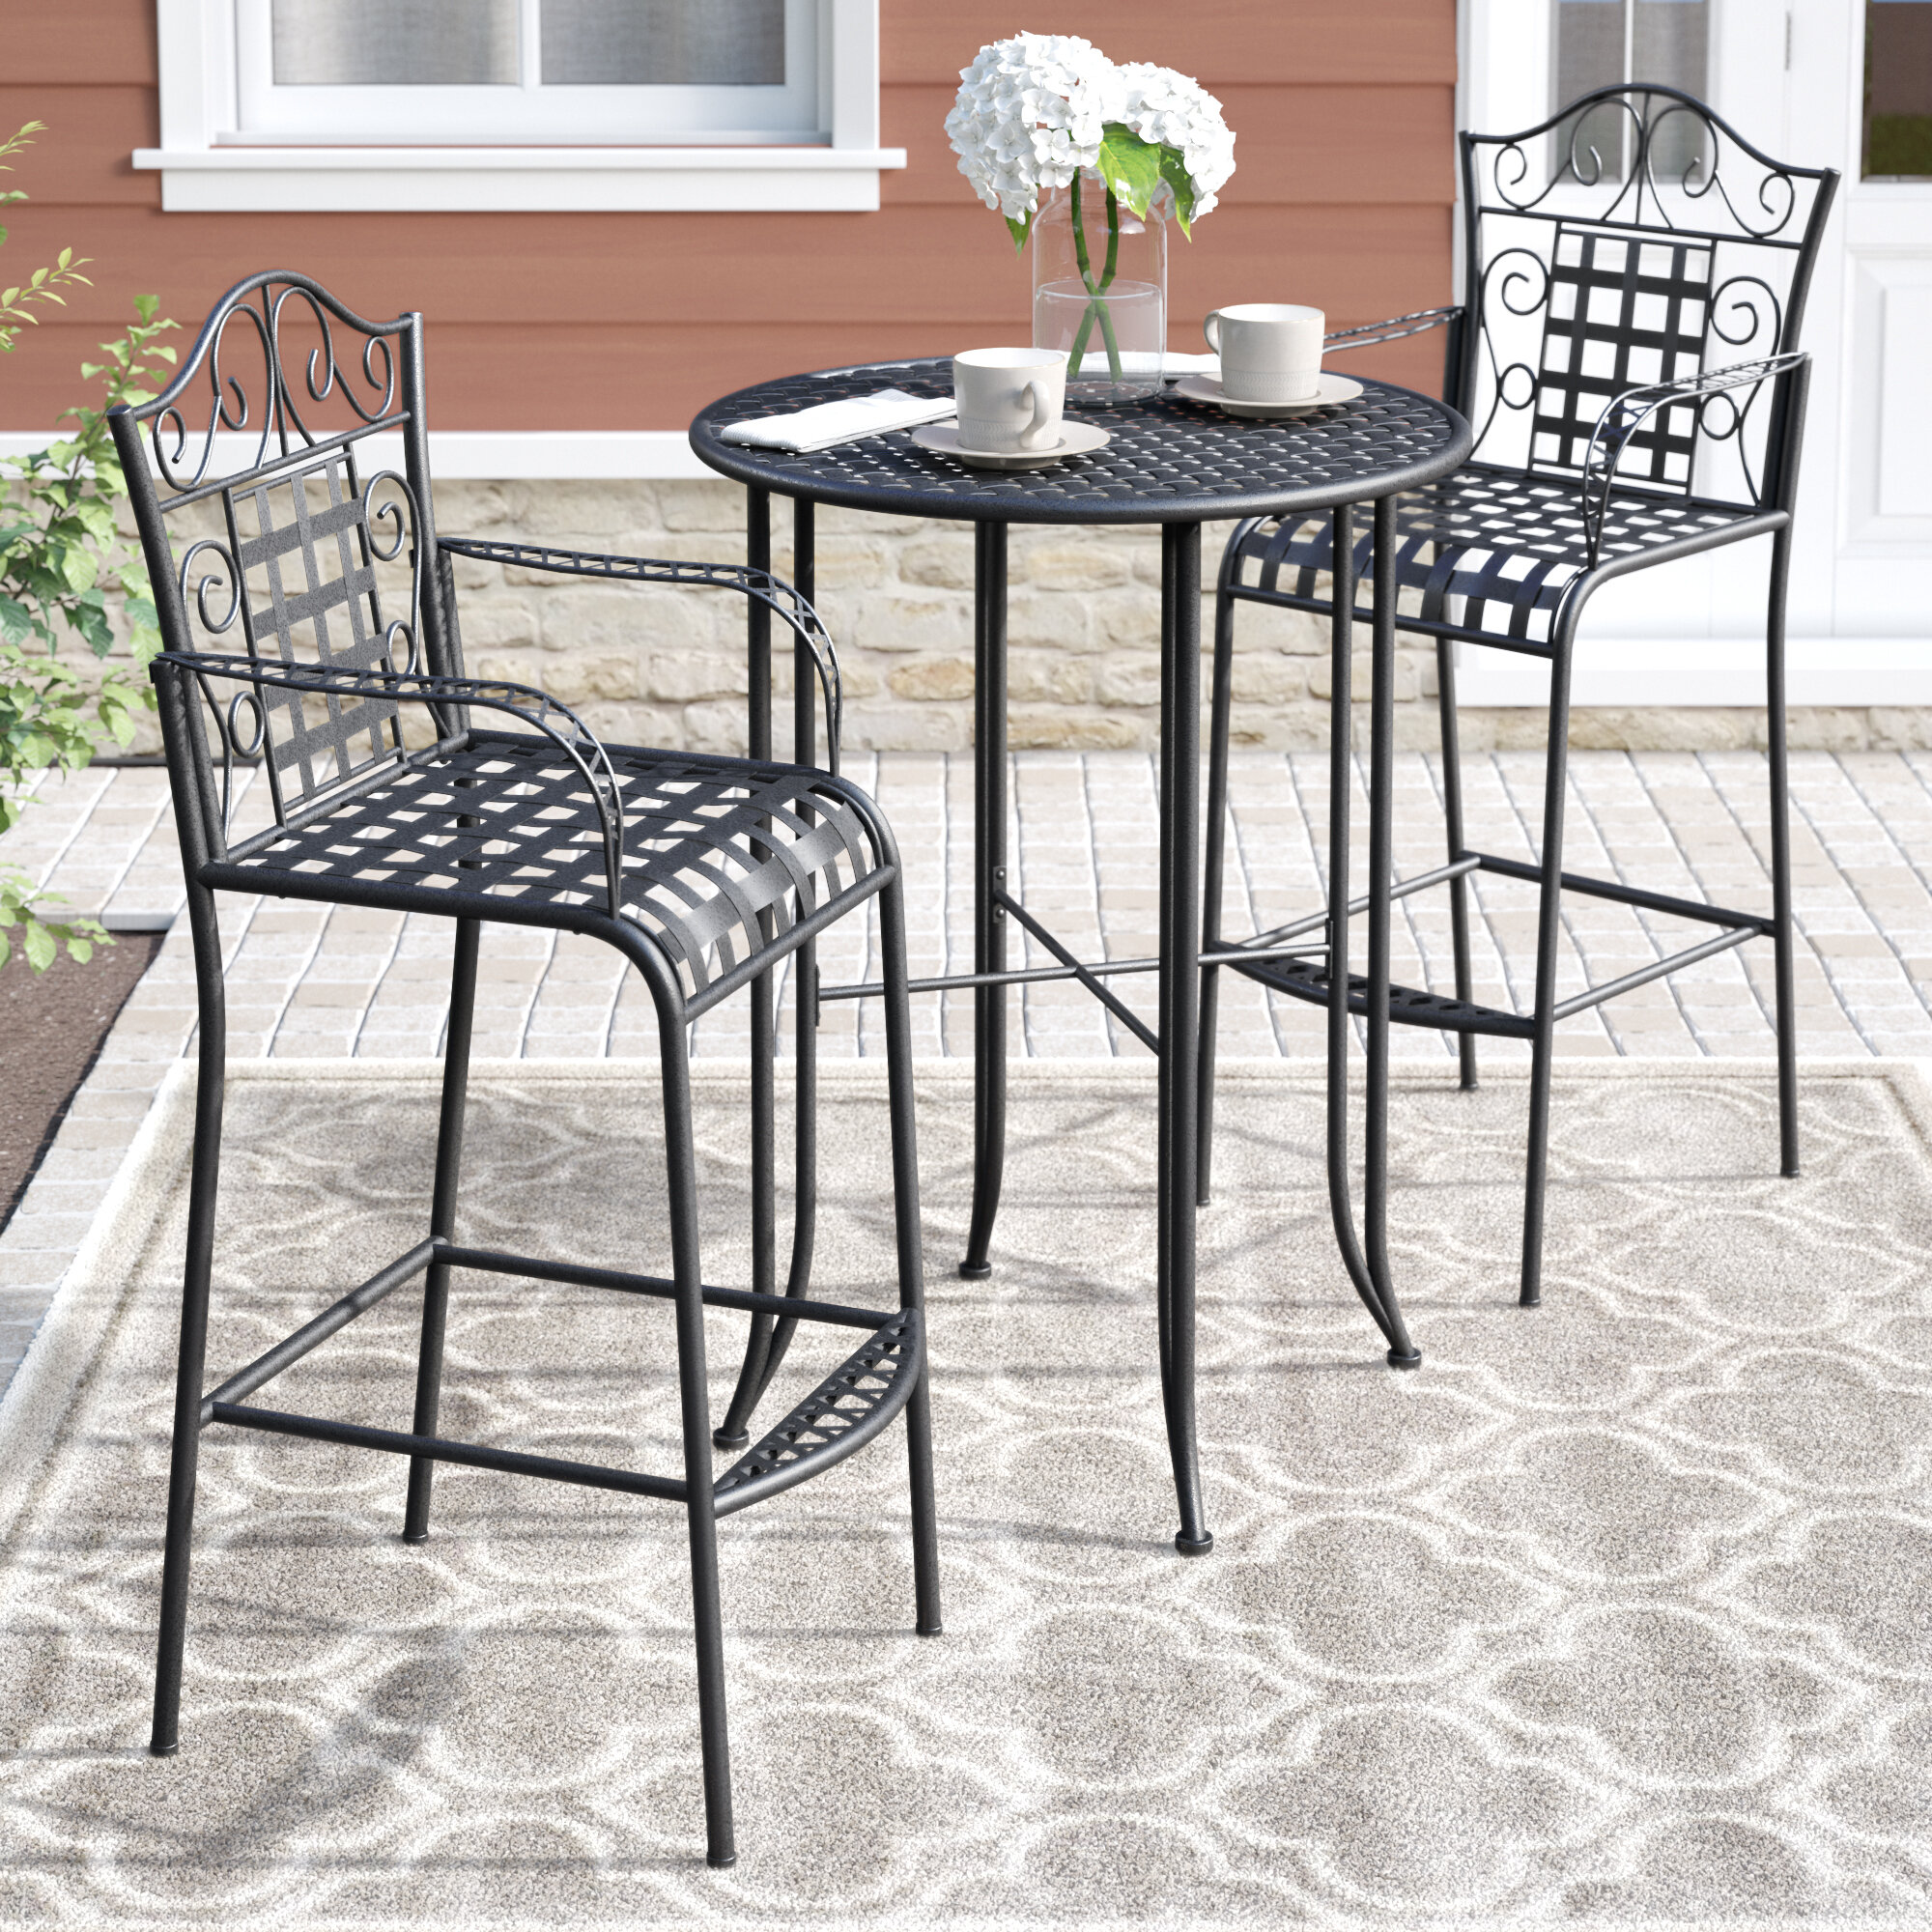 Three Posts Snowberry 3 Piece Wrought Iron Bar Height Bistro Patio Set Reviews Wayfair